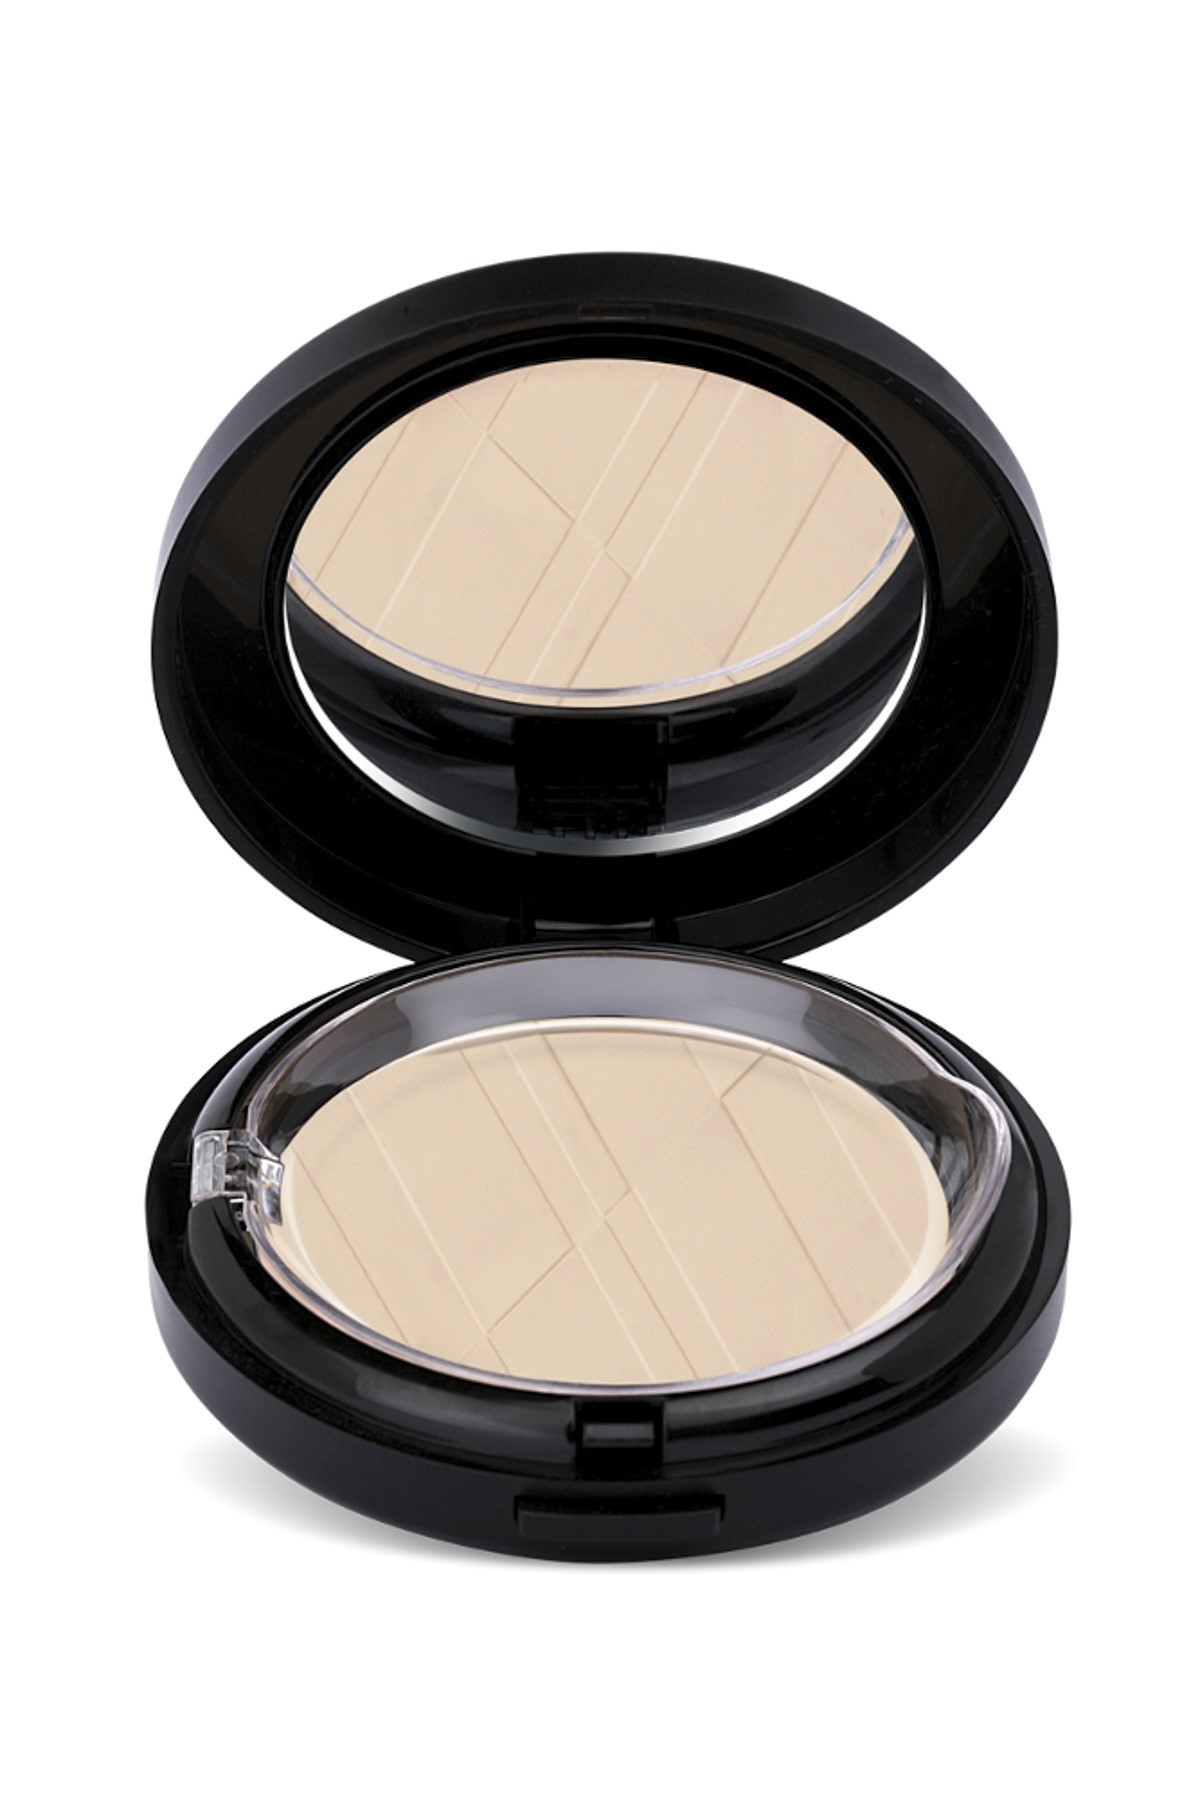 Golden Rose Mat Pudra – Longstay Matte Face Powder No: 02 8691190005825 – 46.99 TL